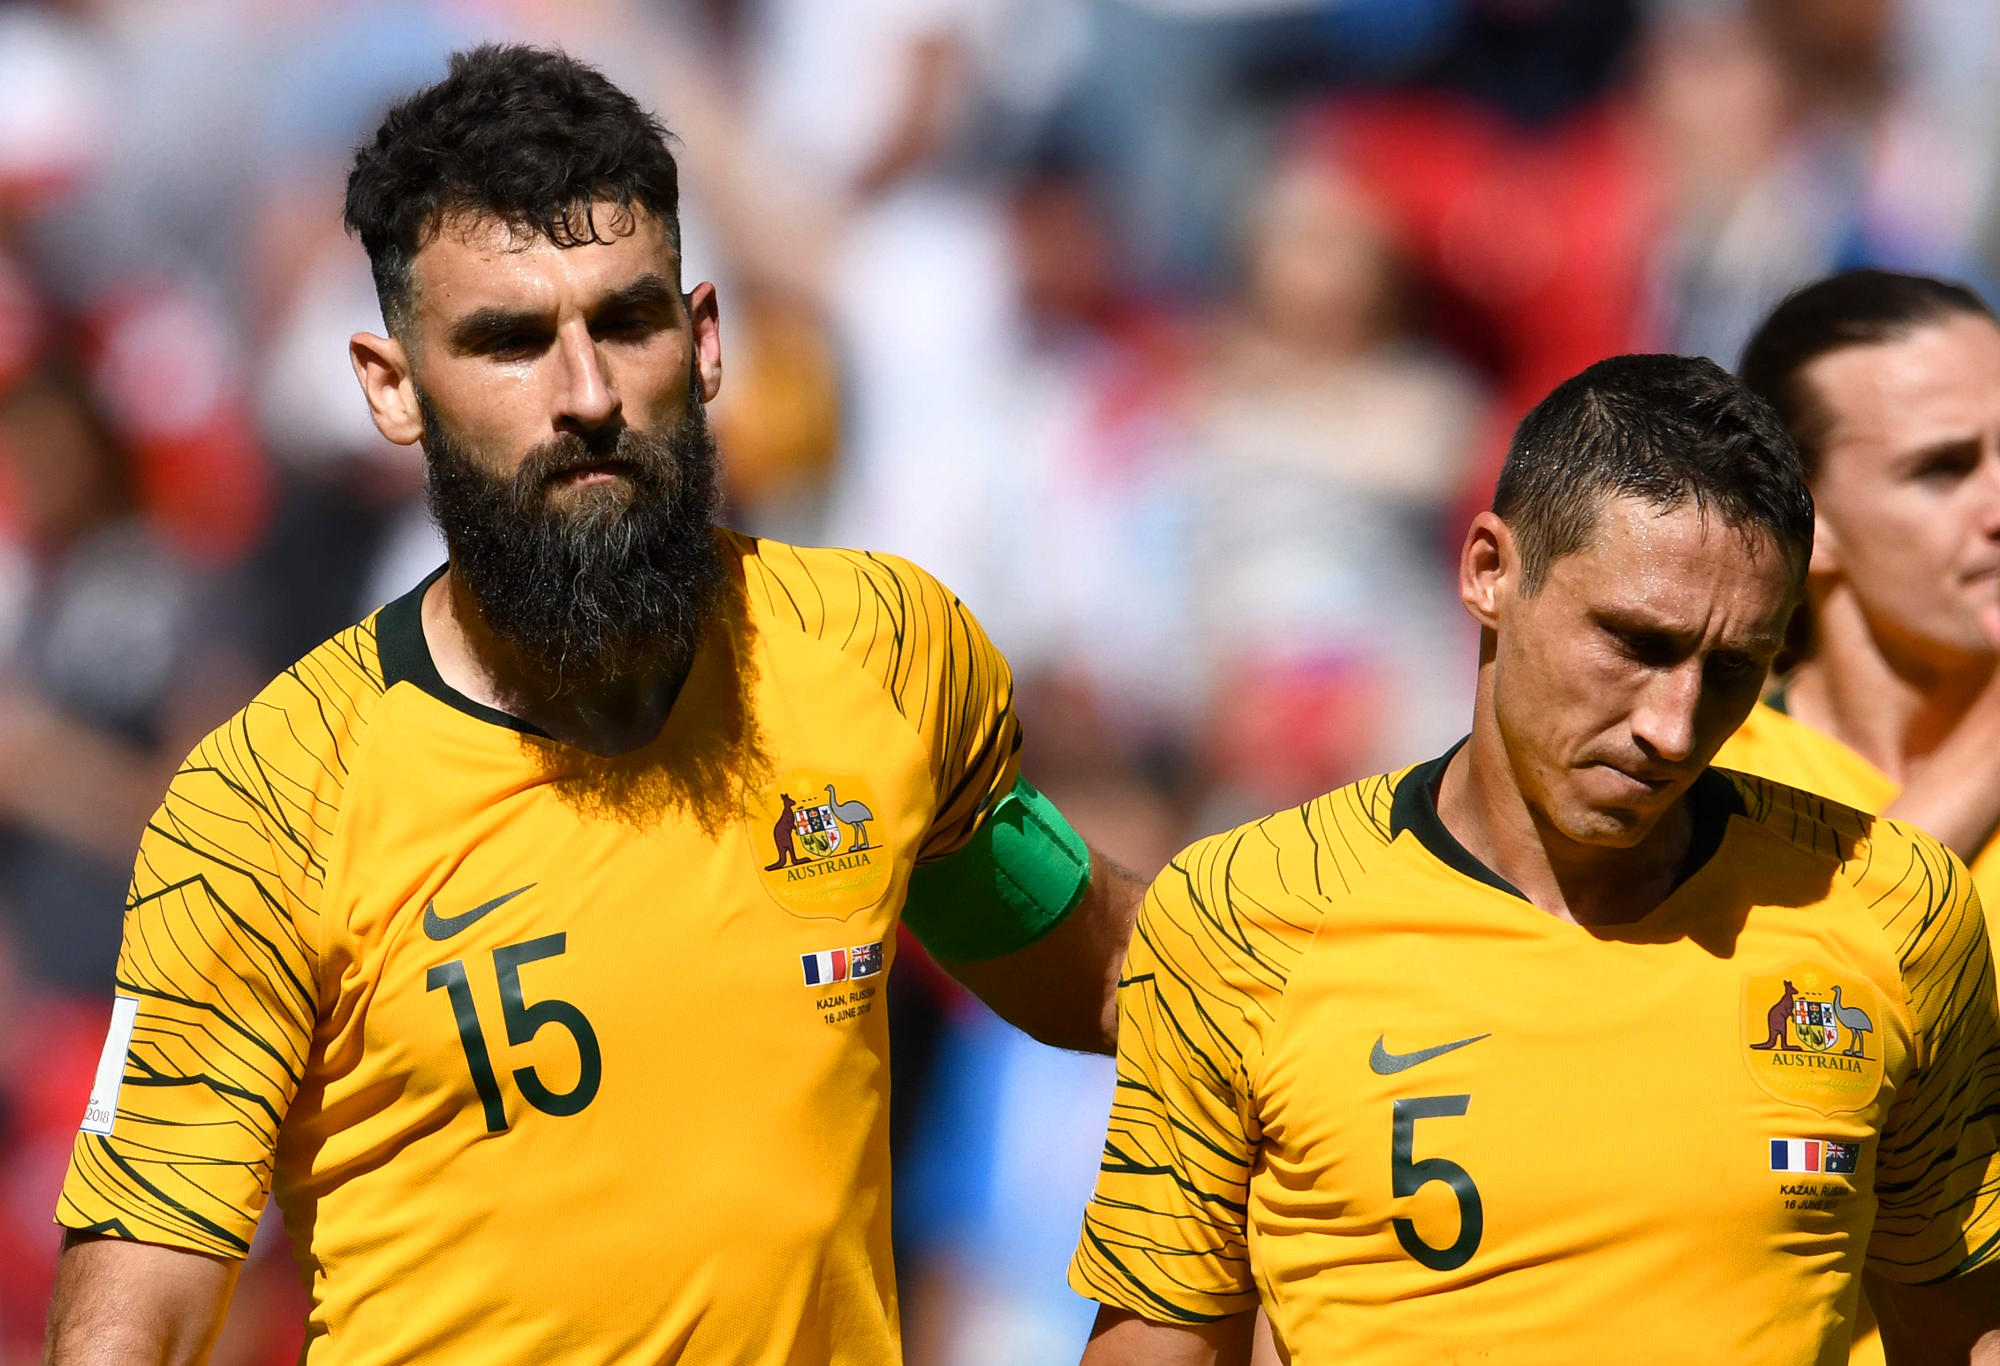 Socceroos Mile Jedinak and Mark Milligan react after losing a World Cup game